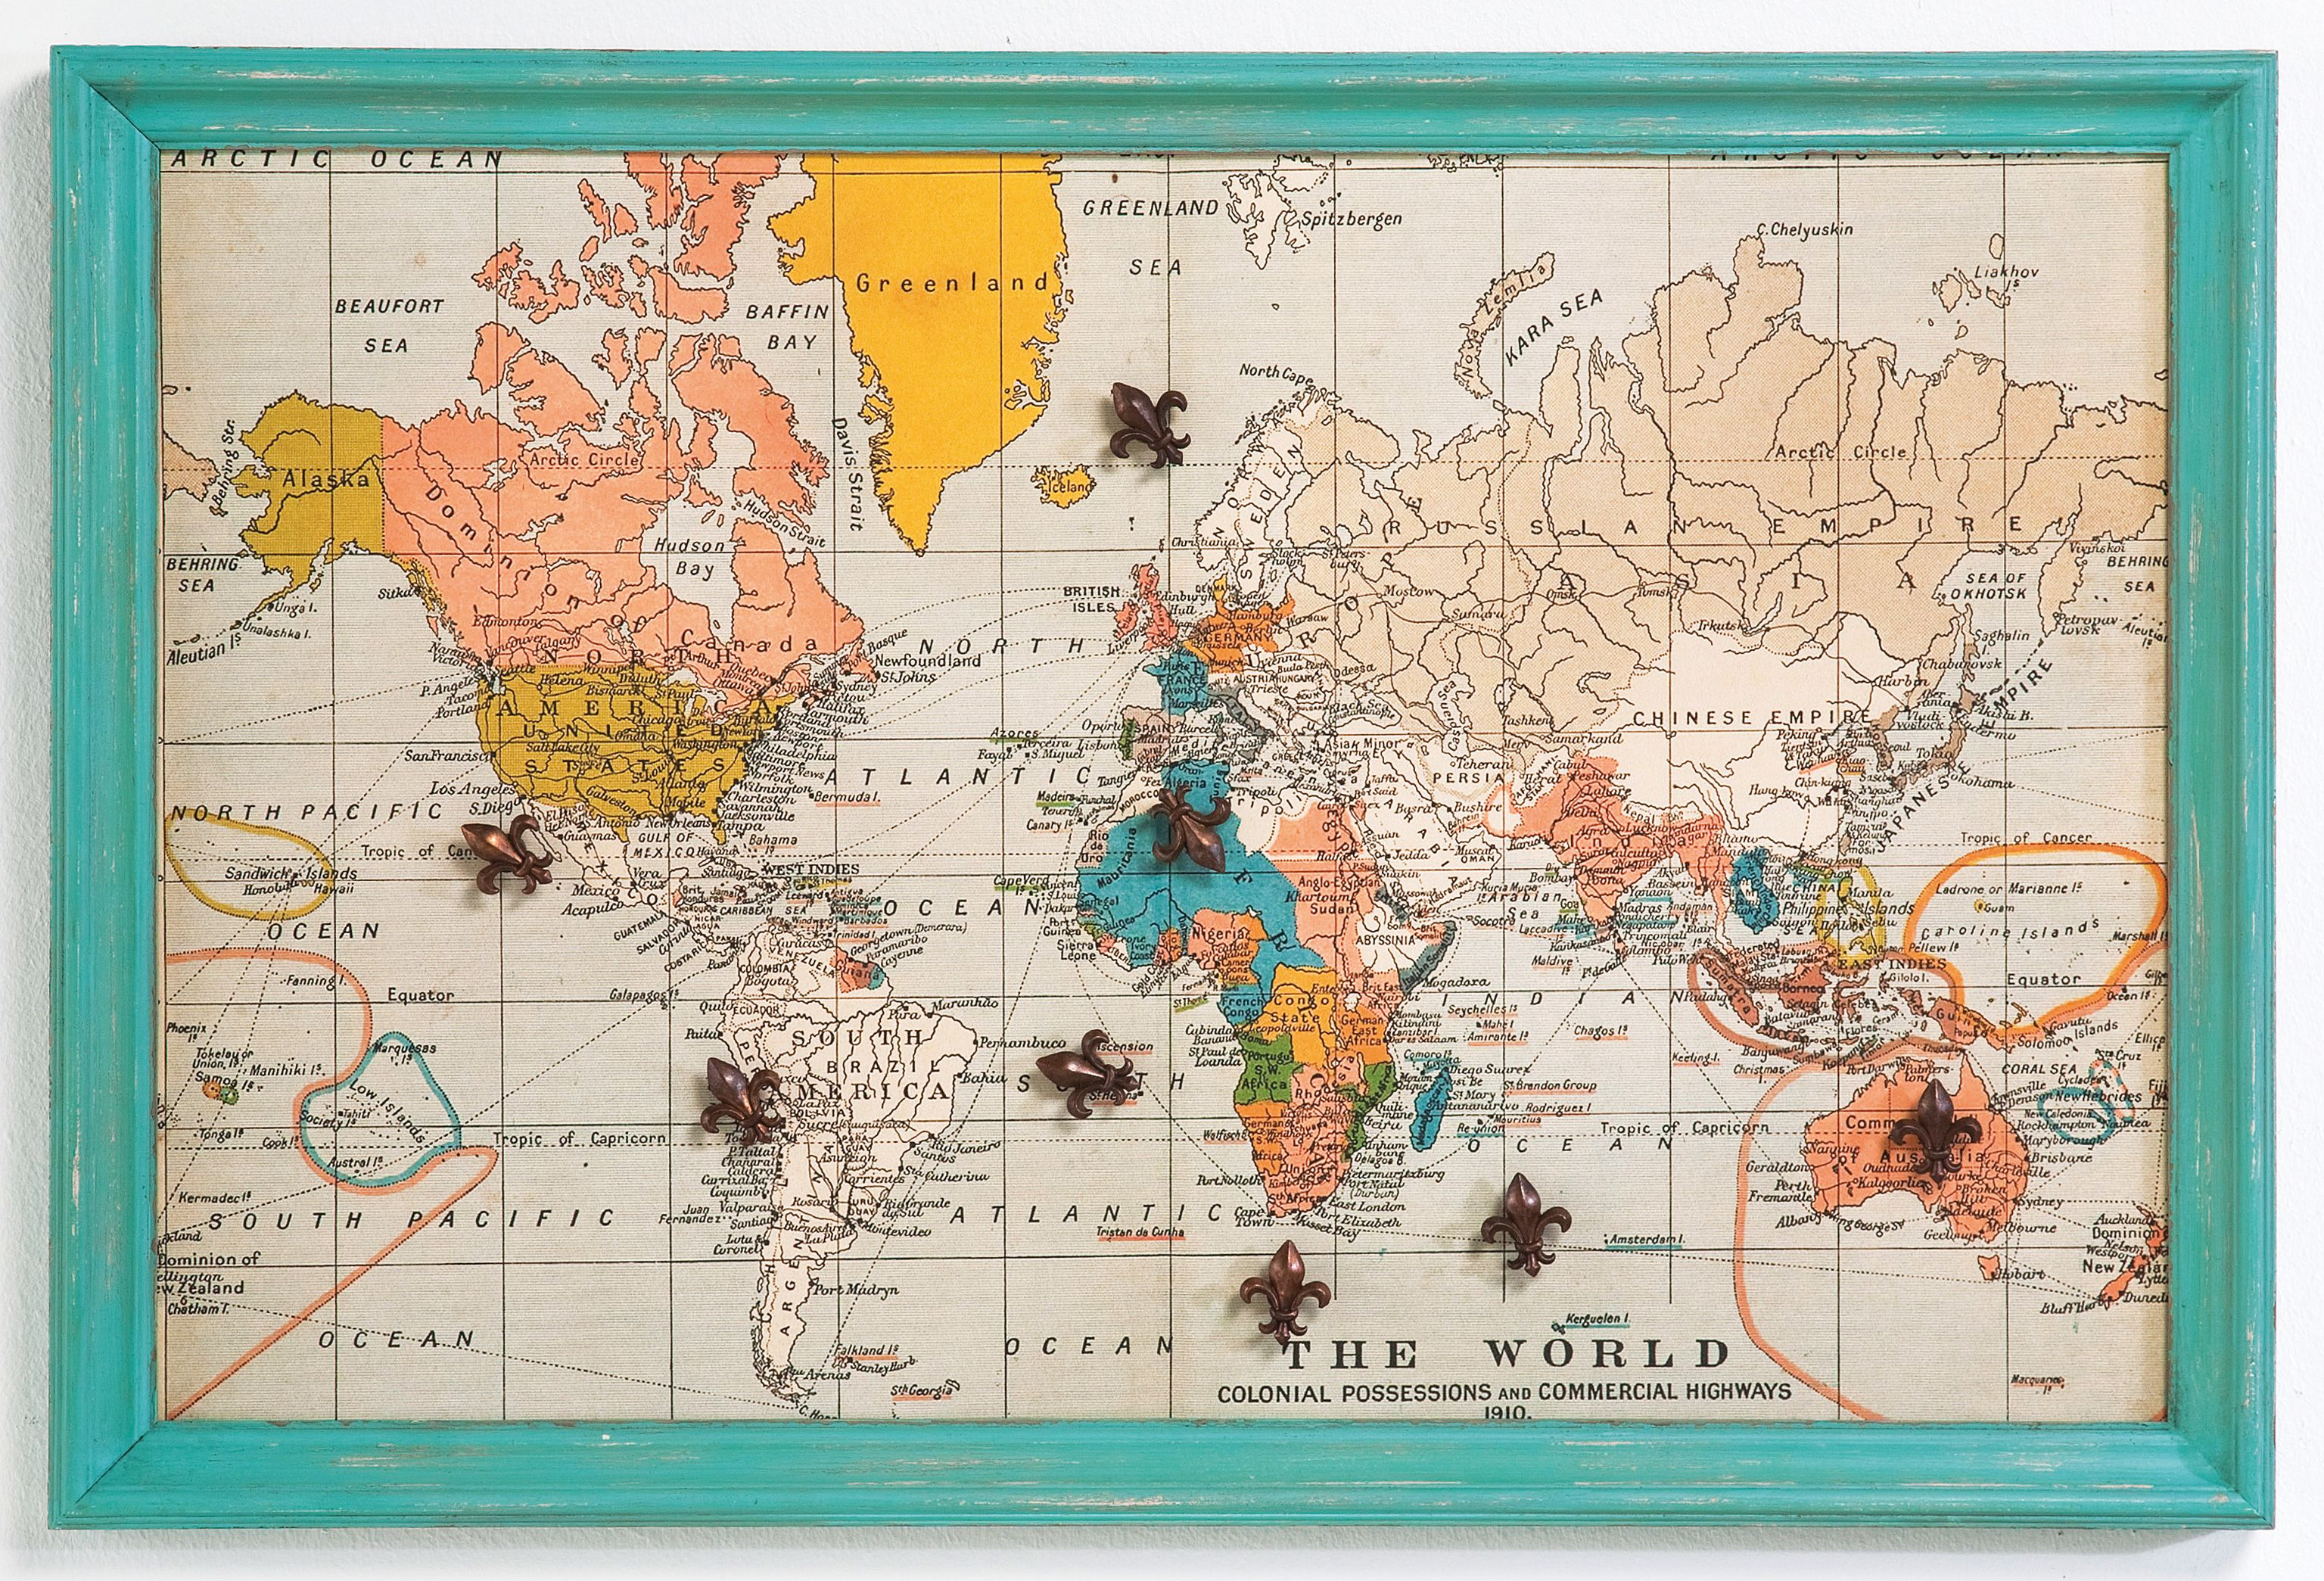 Vintage world map memo board by i love retro design by stuckup awesome world map magnetic board perfect for my magnet collection from all my travels gumiabroncs Image collections